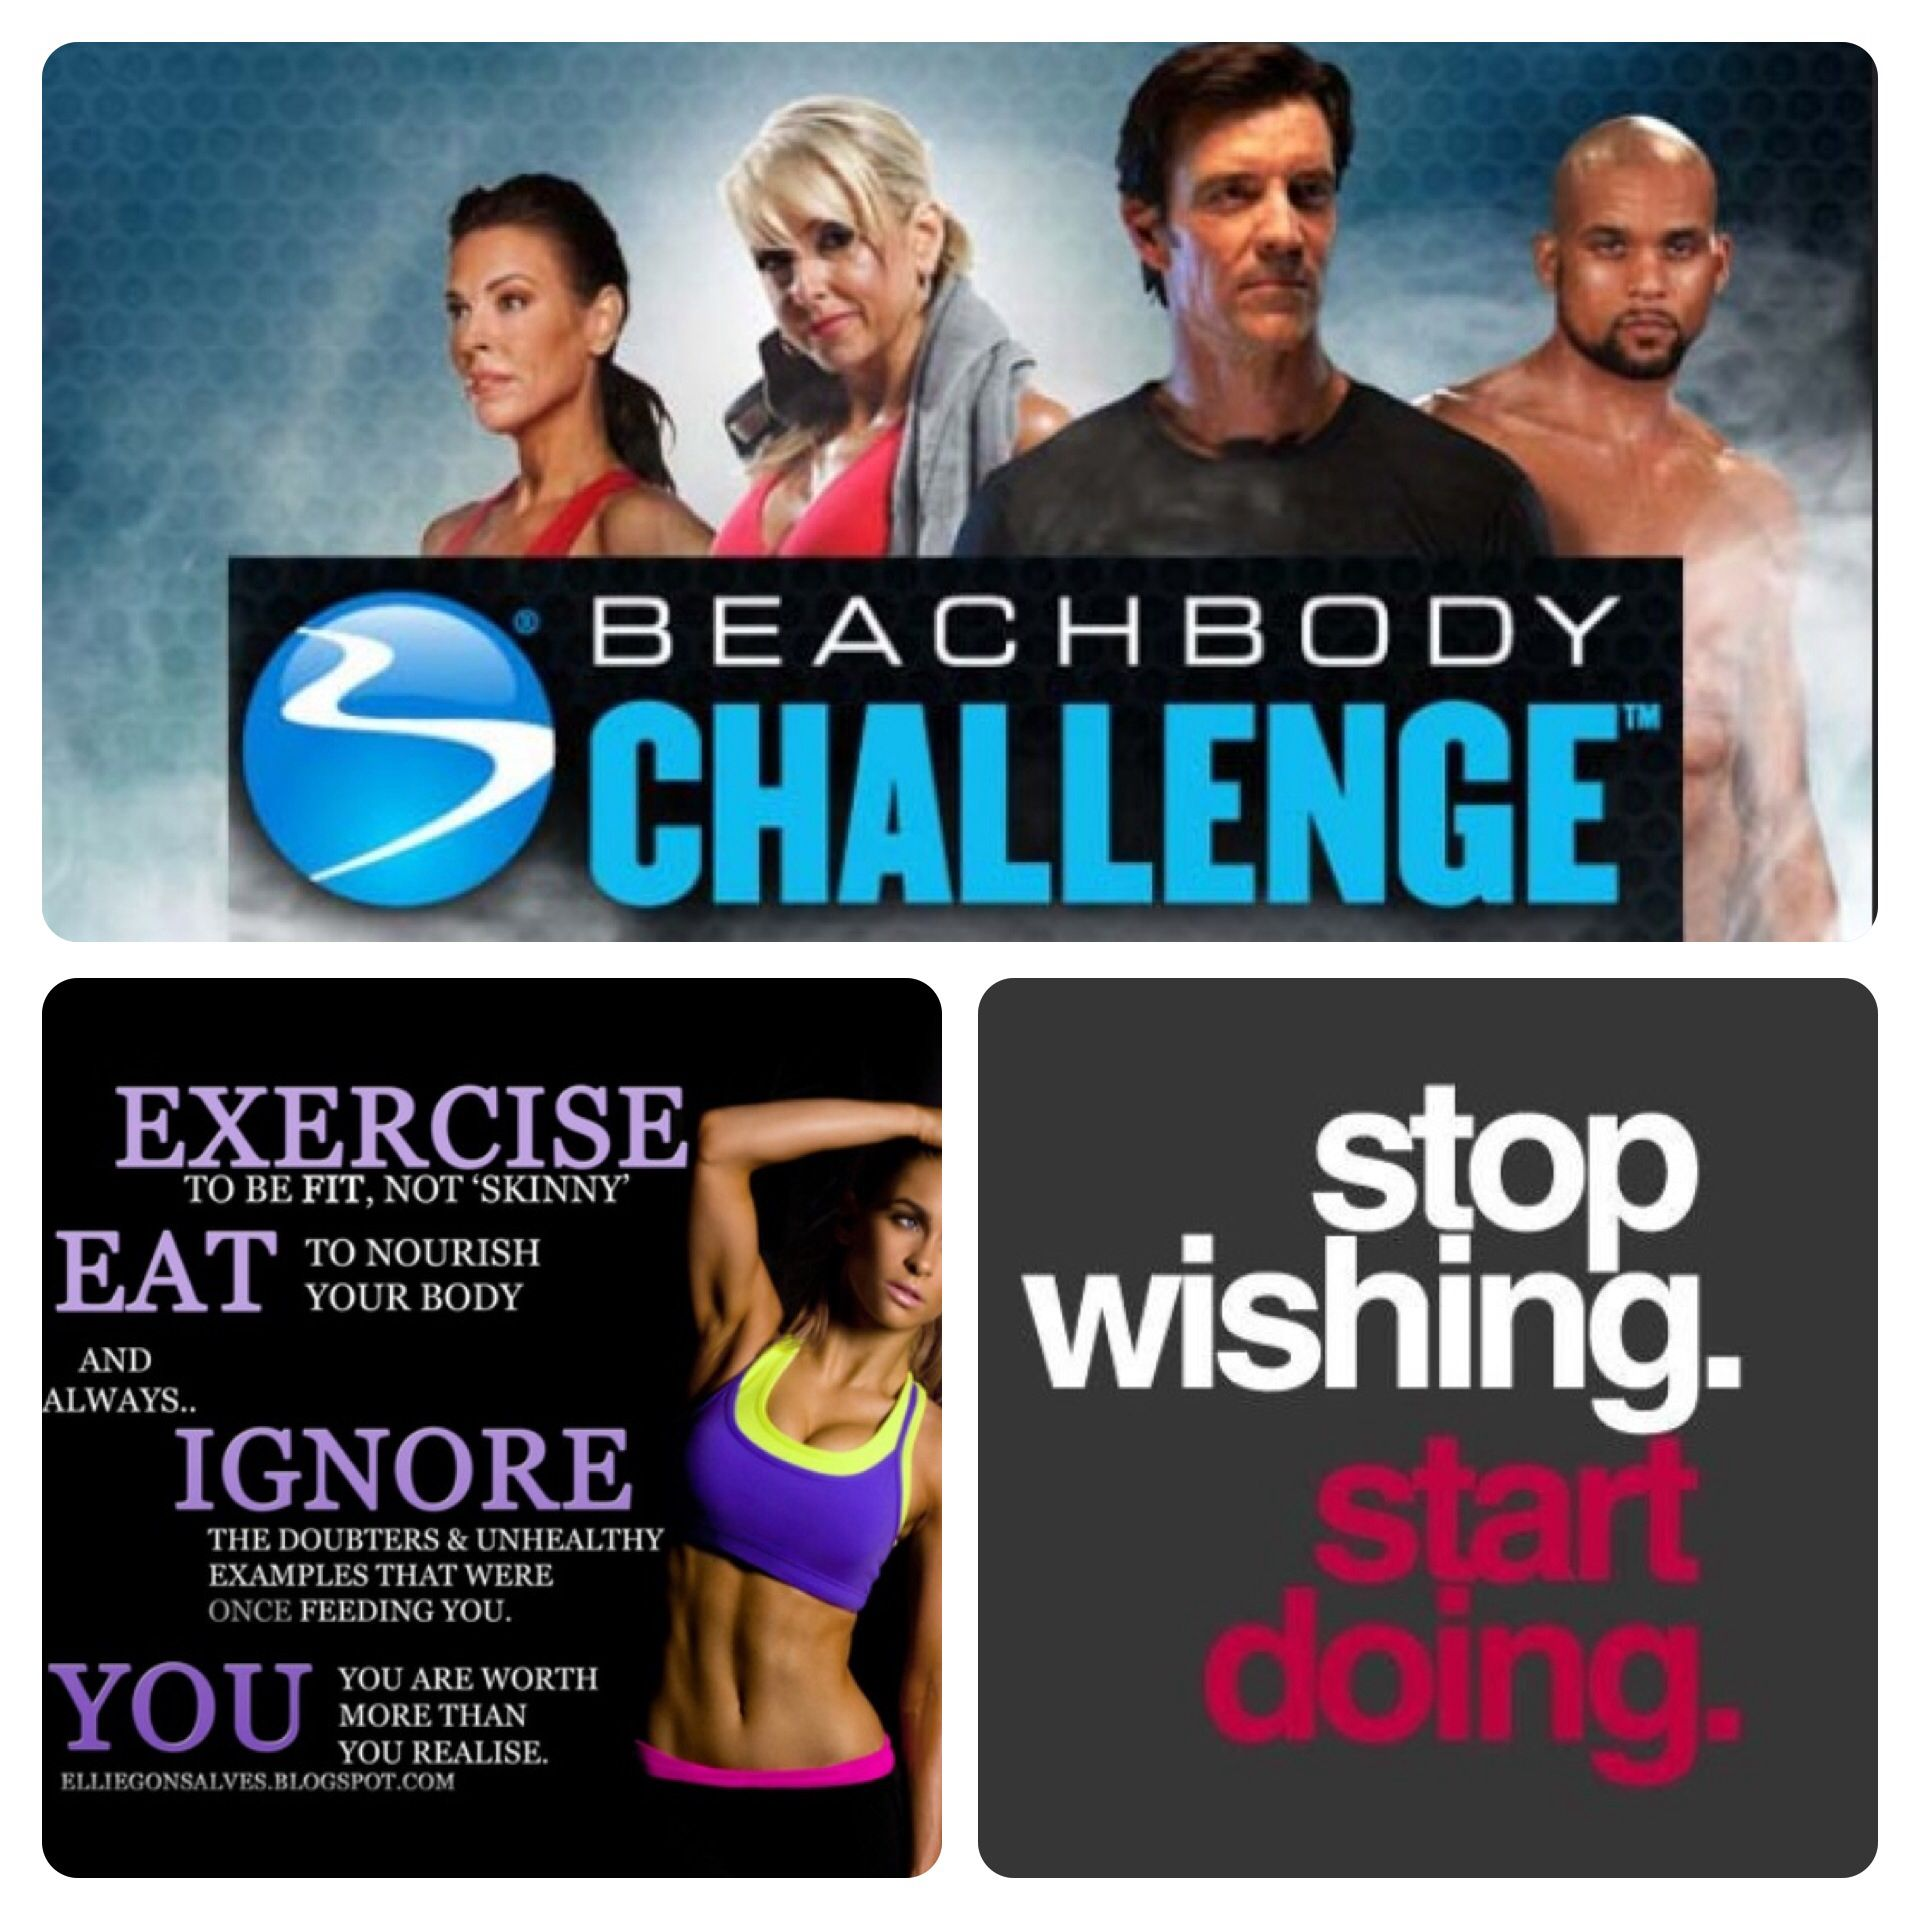 Join Team Beach Body Today 60 Day Challenge To What Ever